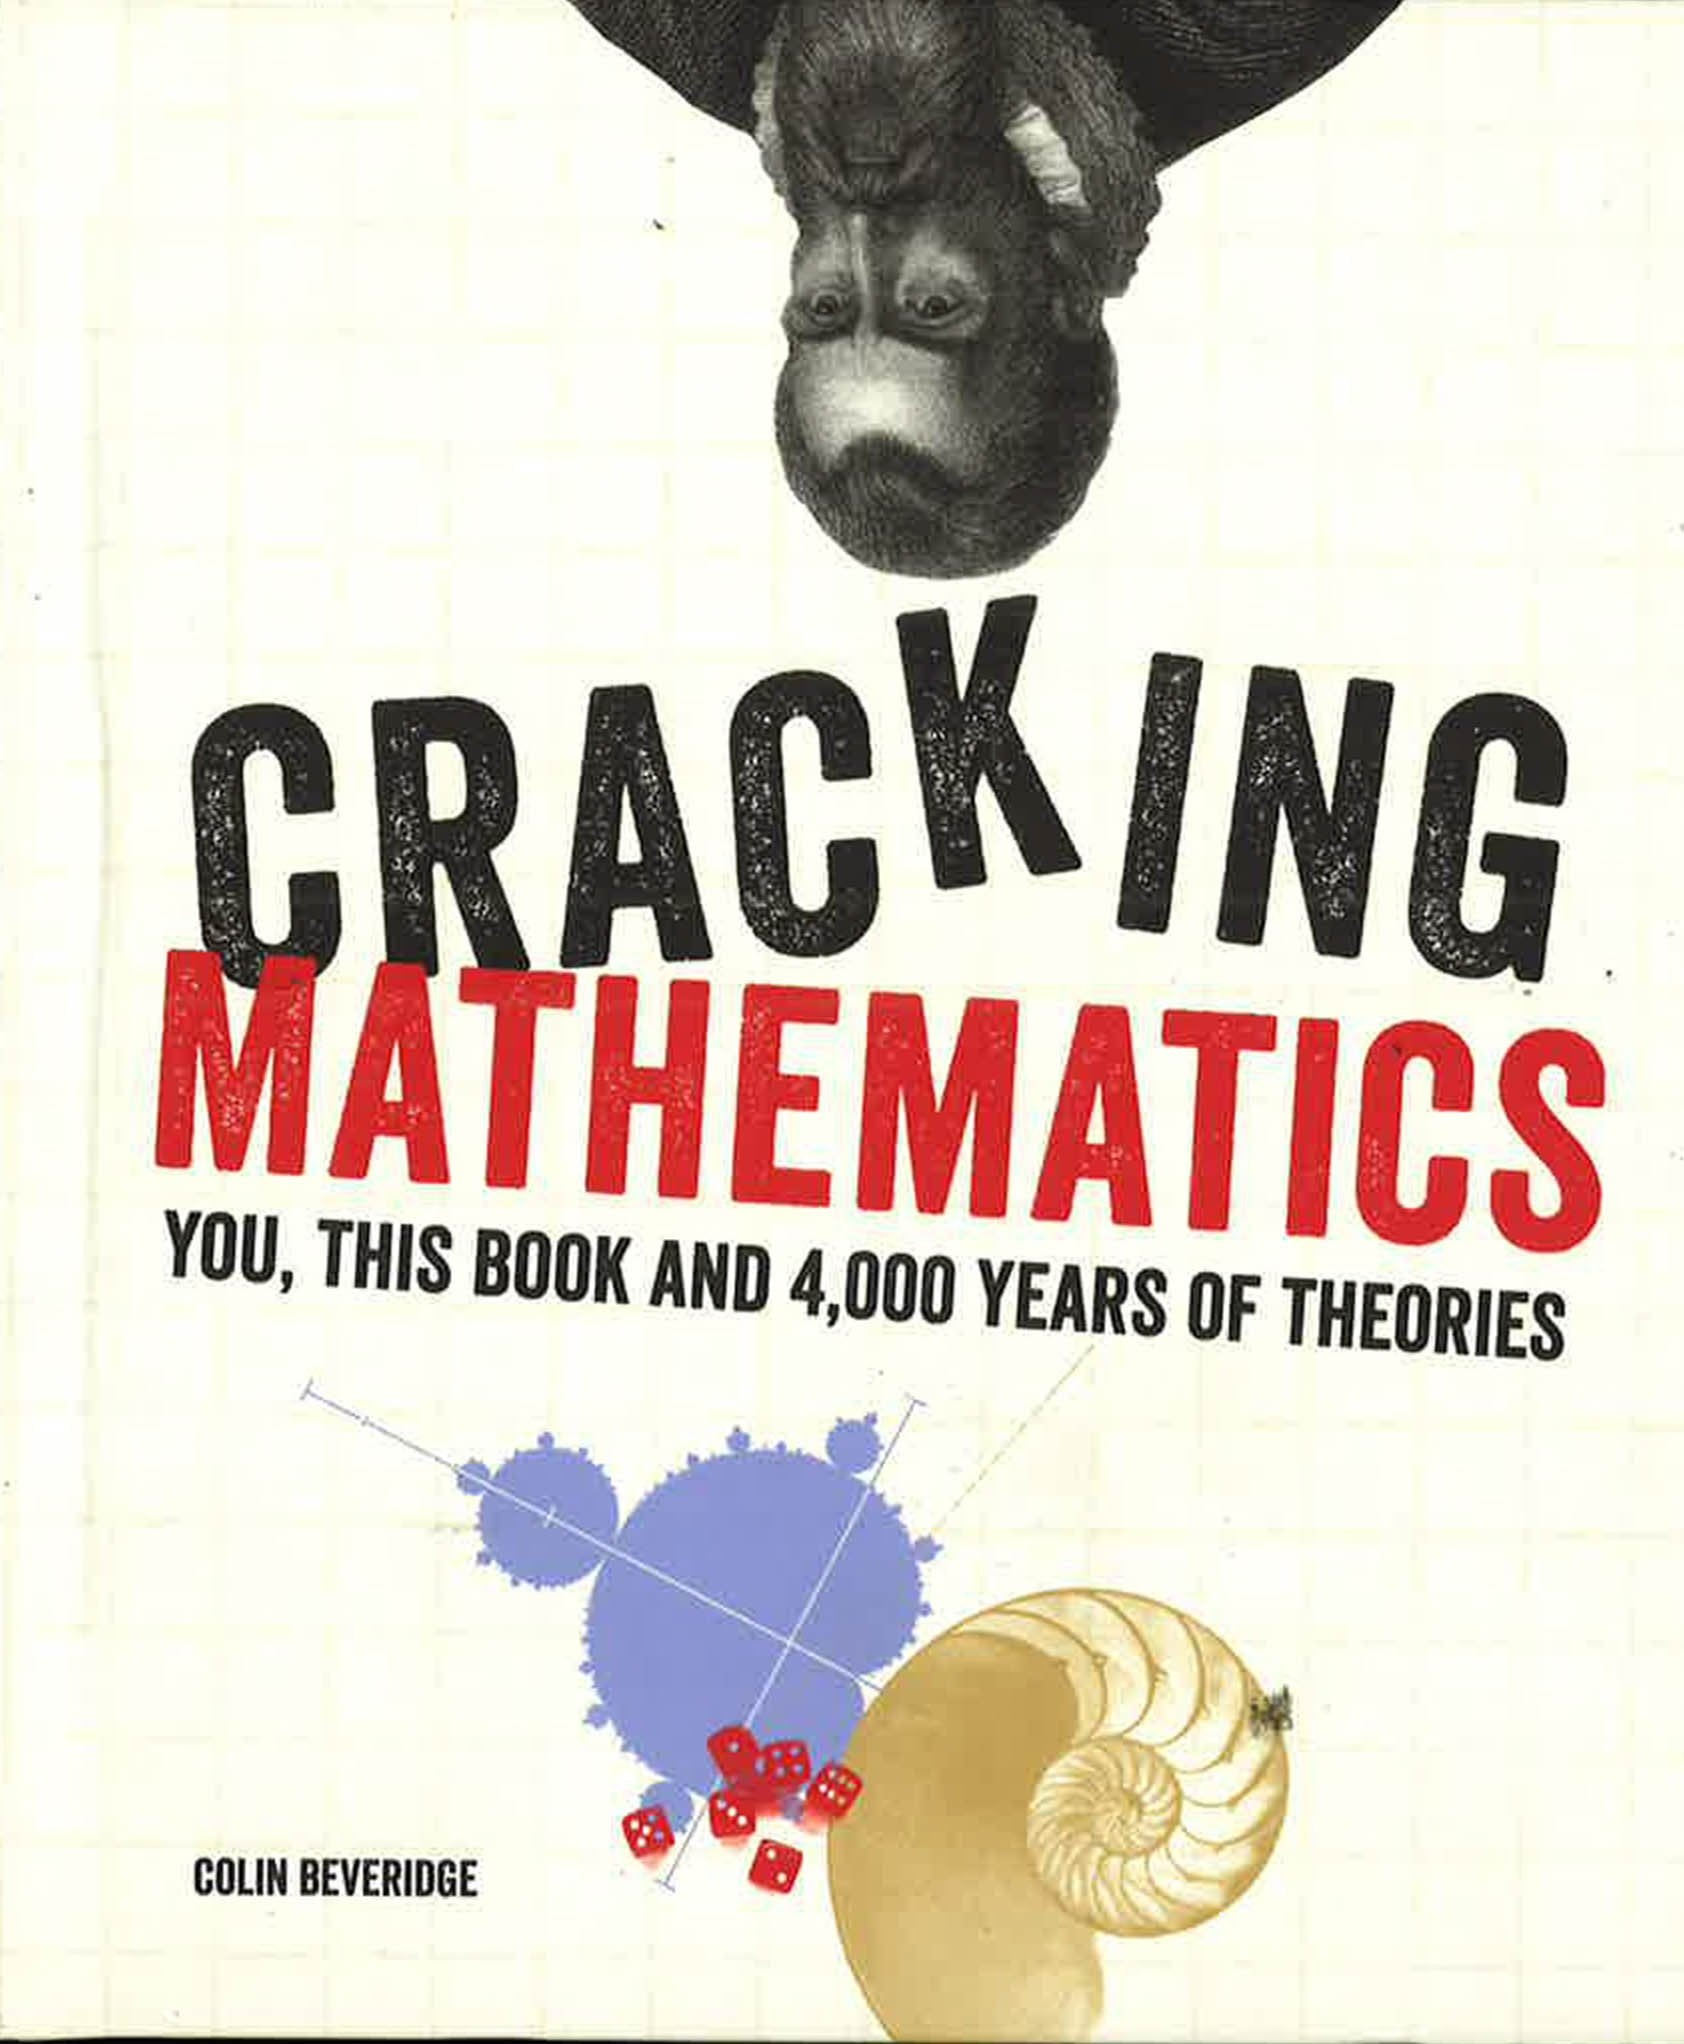 Cracking Mathematics: You, This Book And 4,000 Years Of Theories